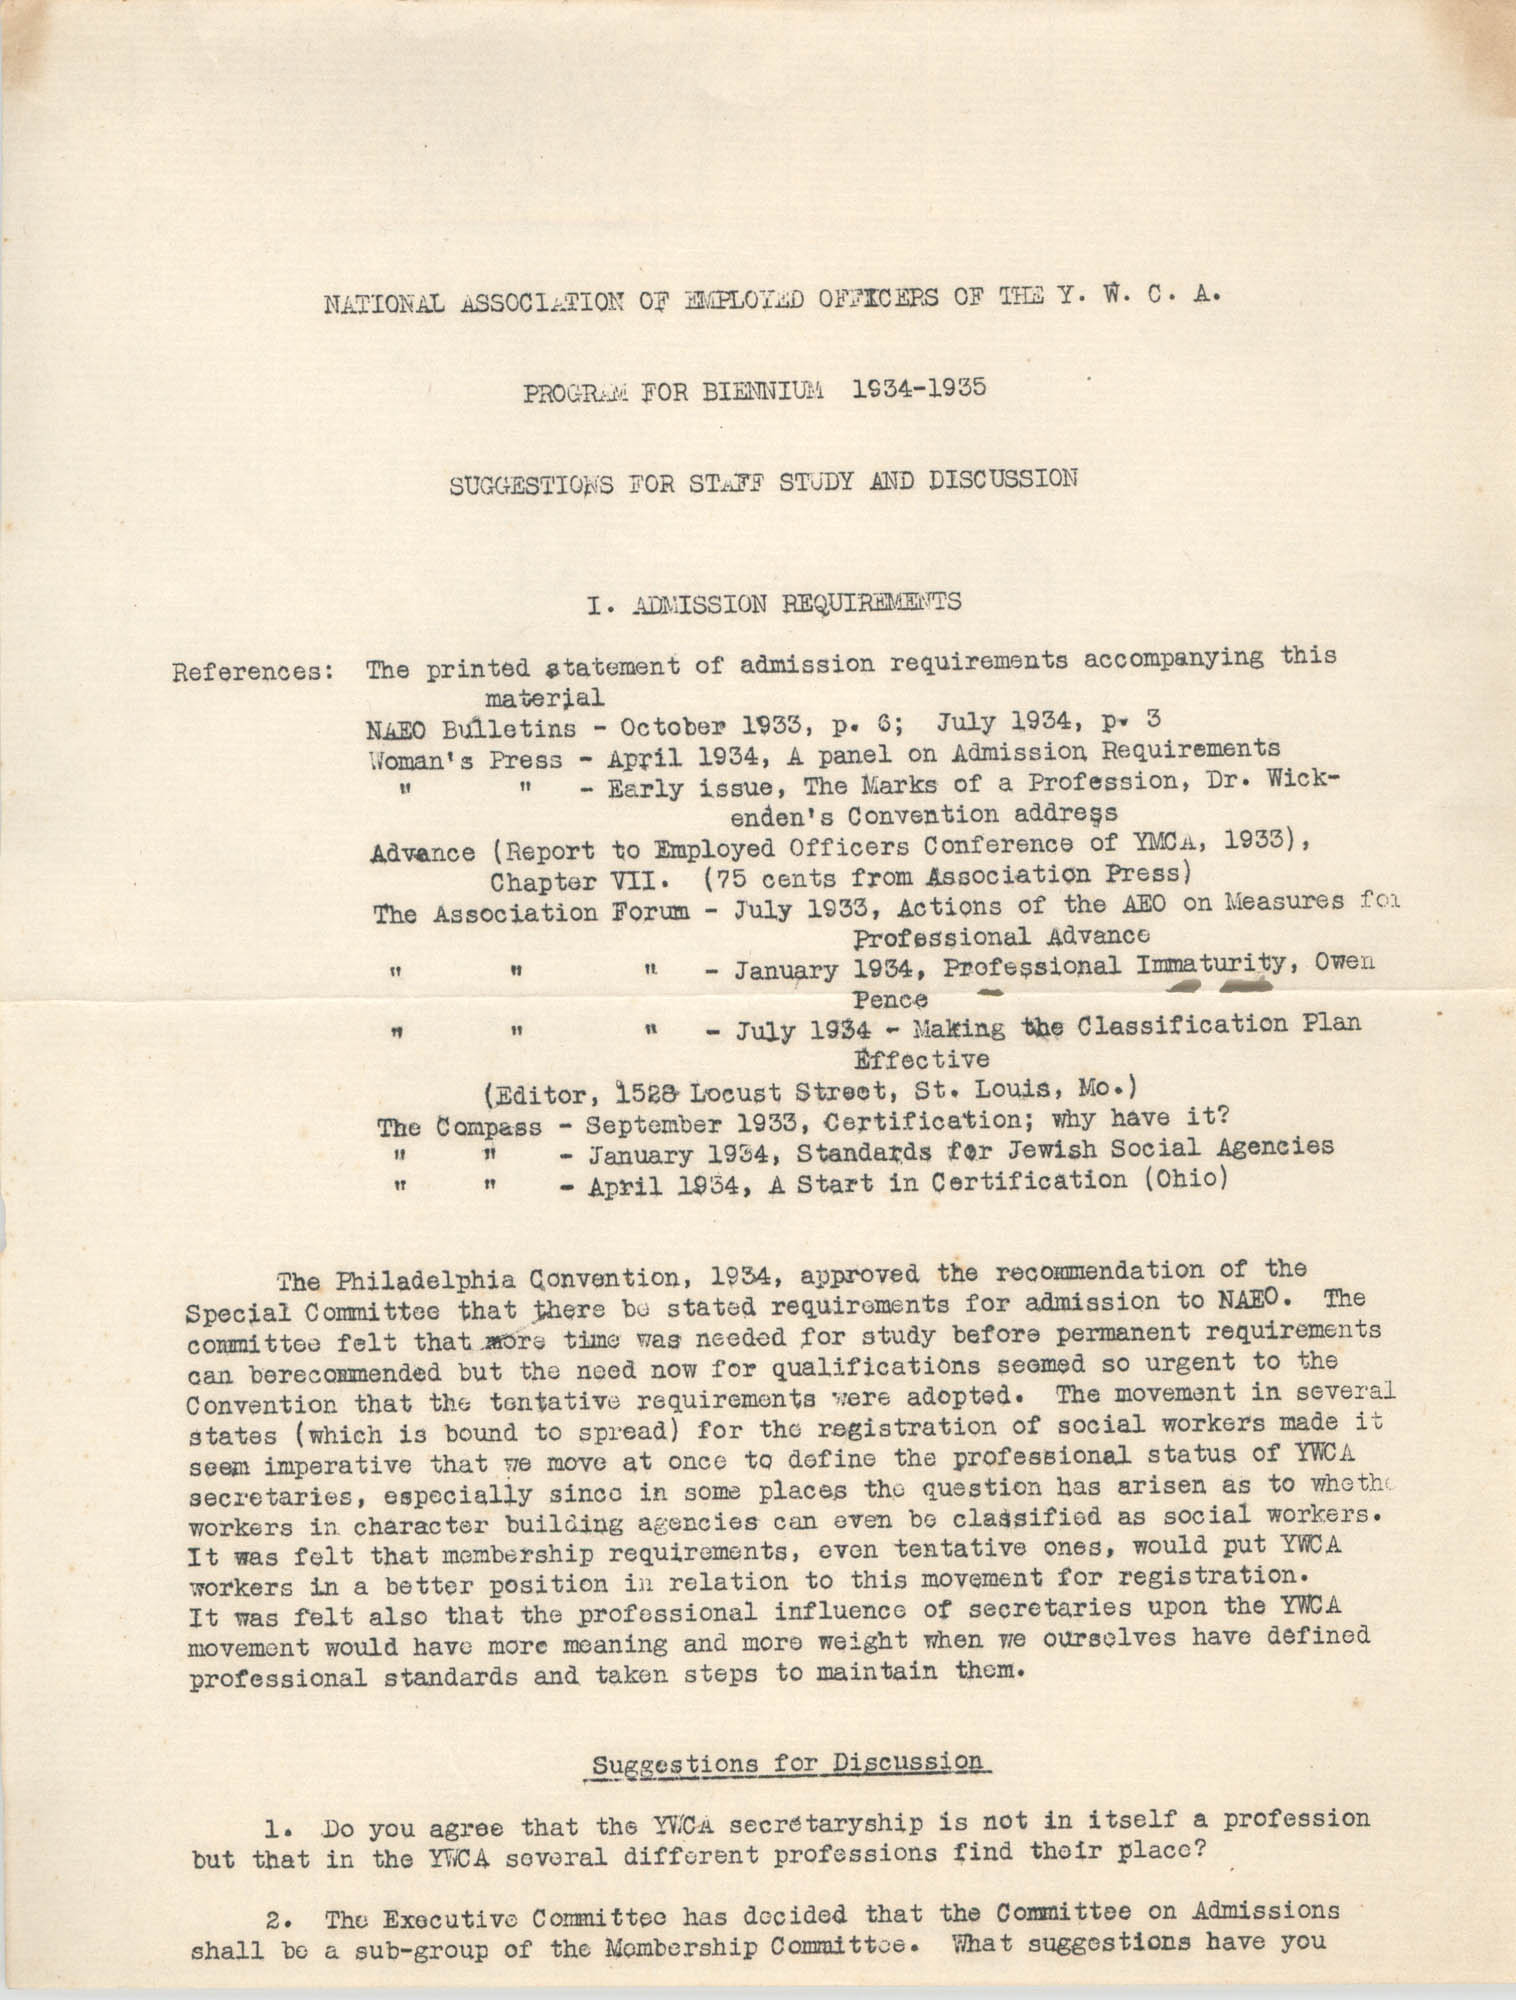 National Association of Employed Officers of the Y.W.C.A. Program for Biennium, 1934-1935